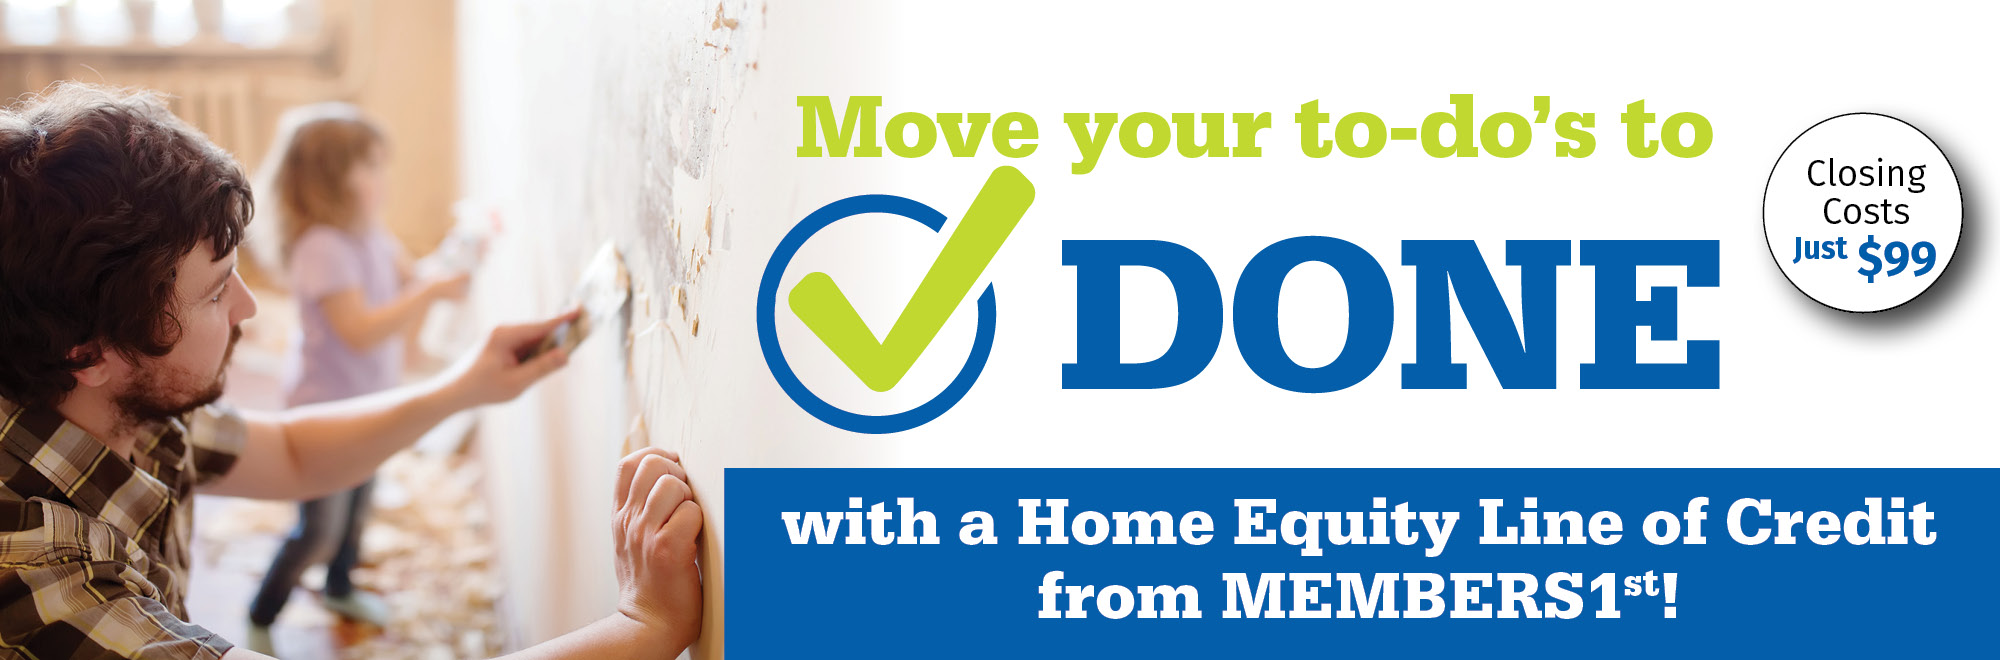 Move your to-do's off your list with a home equity line of credit from MEMBERS1st!